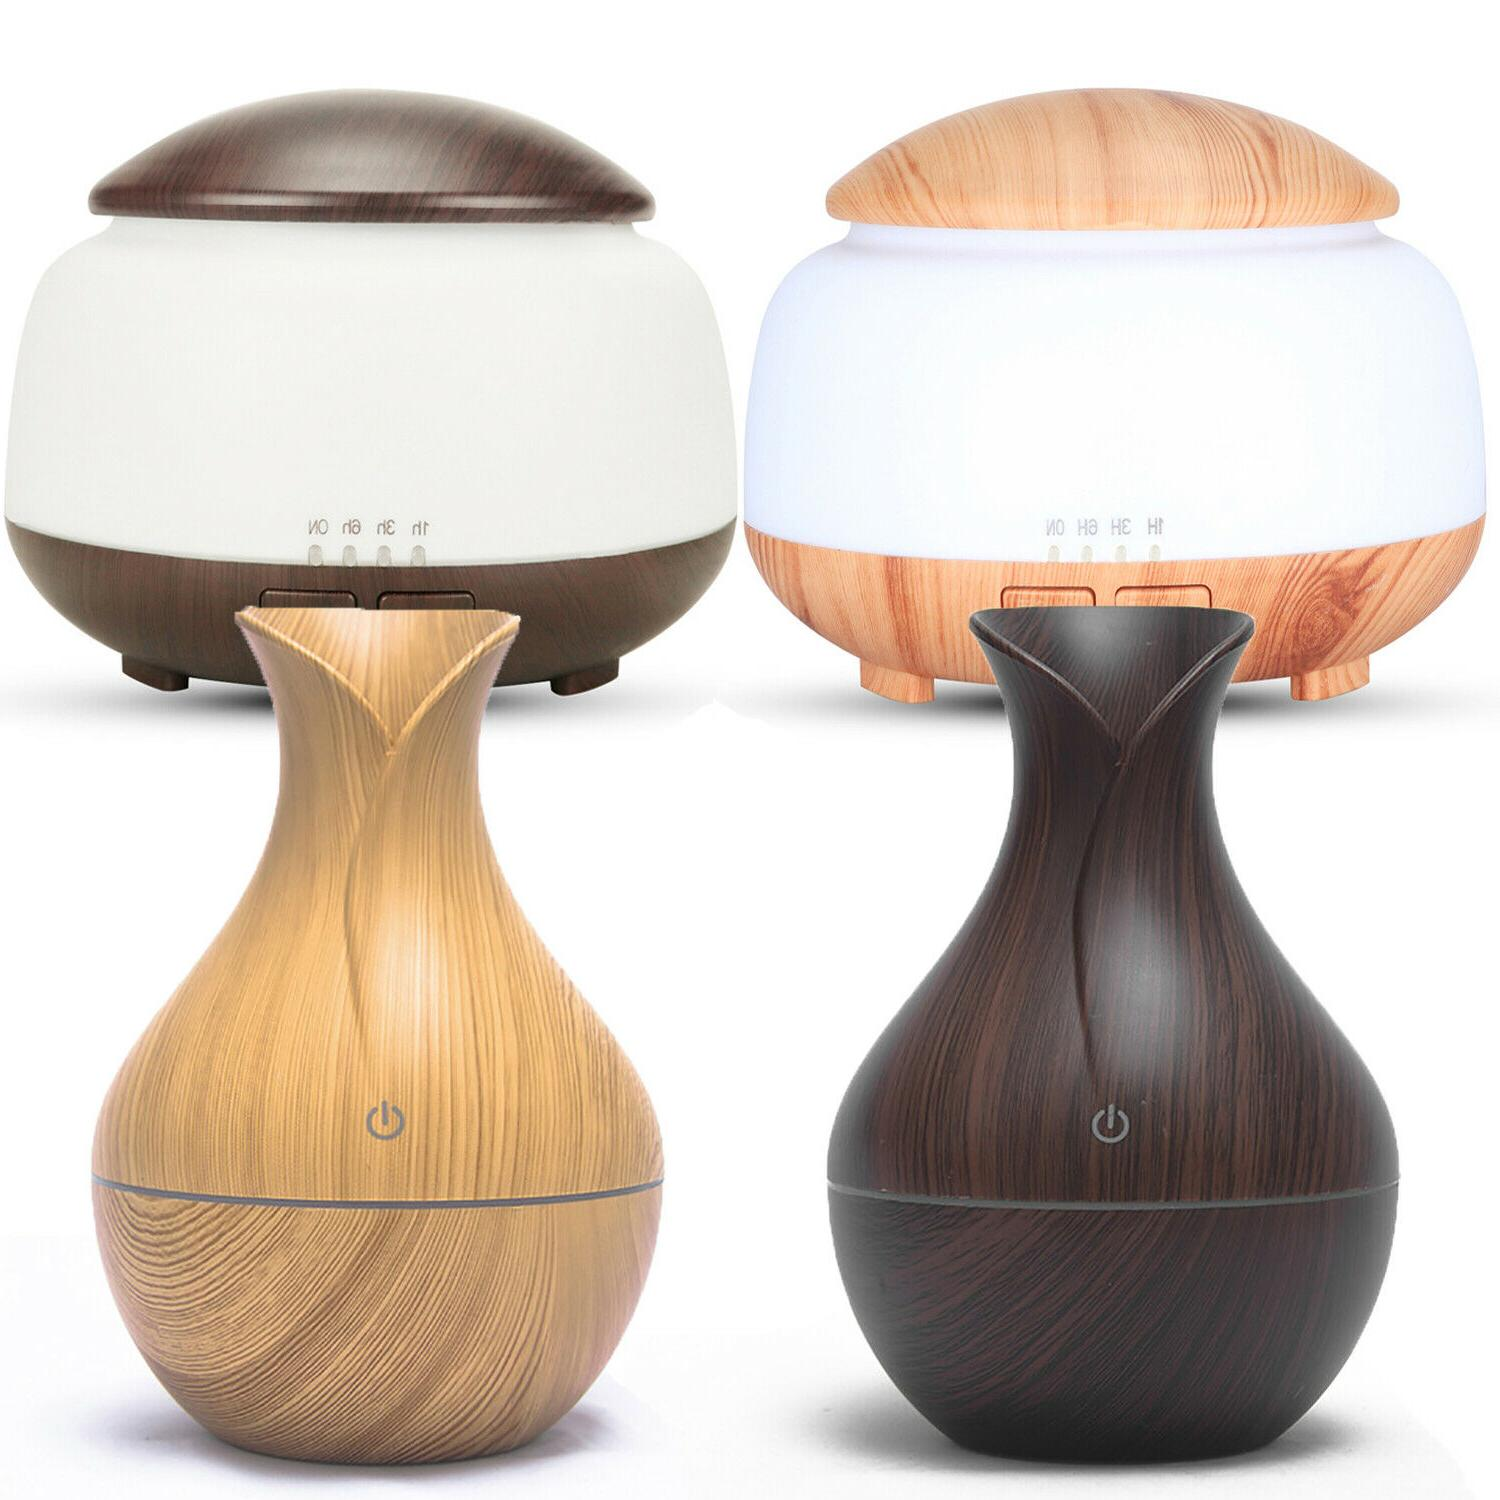 intelligent 7 led humidifier essential oil diffuser